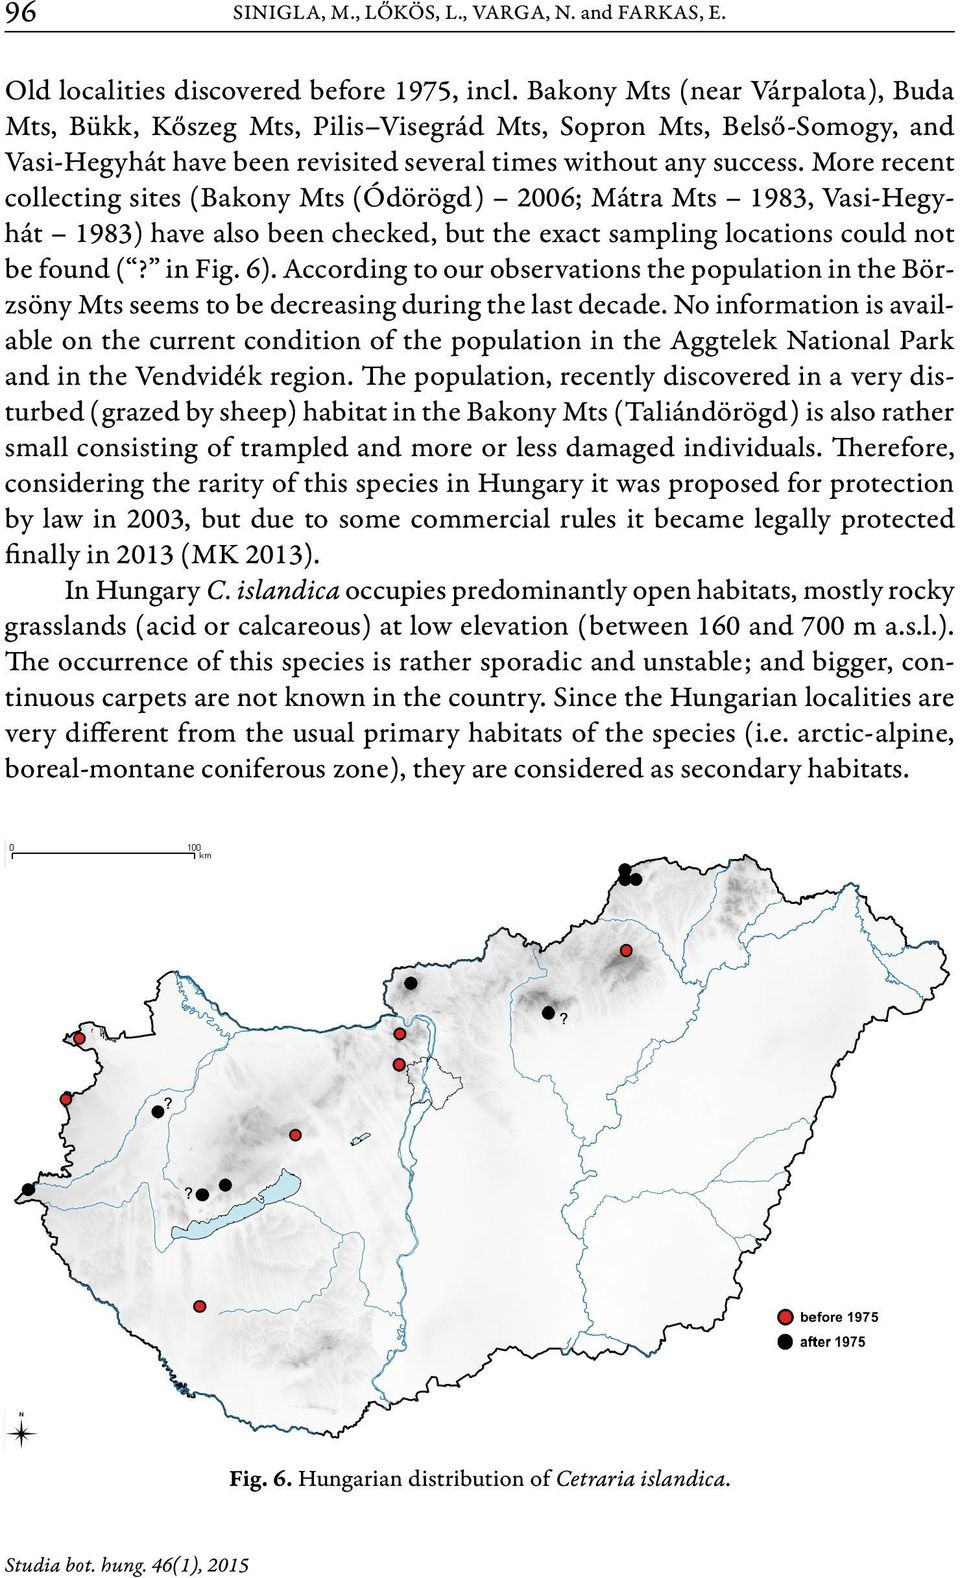 More recent collecting sites (Bakony Mts (Ódörögd) 2006; Mátra Mts 1983, Vasi-Hegyhát 1983) have also been checked, but the exact sampling locations could not be found (? in Fig. 6).